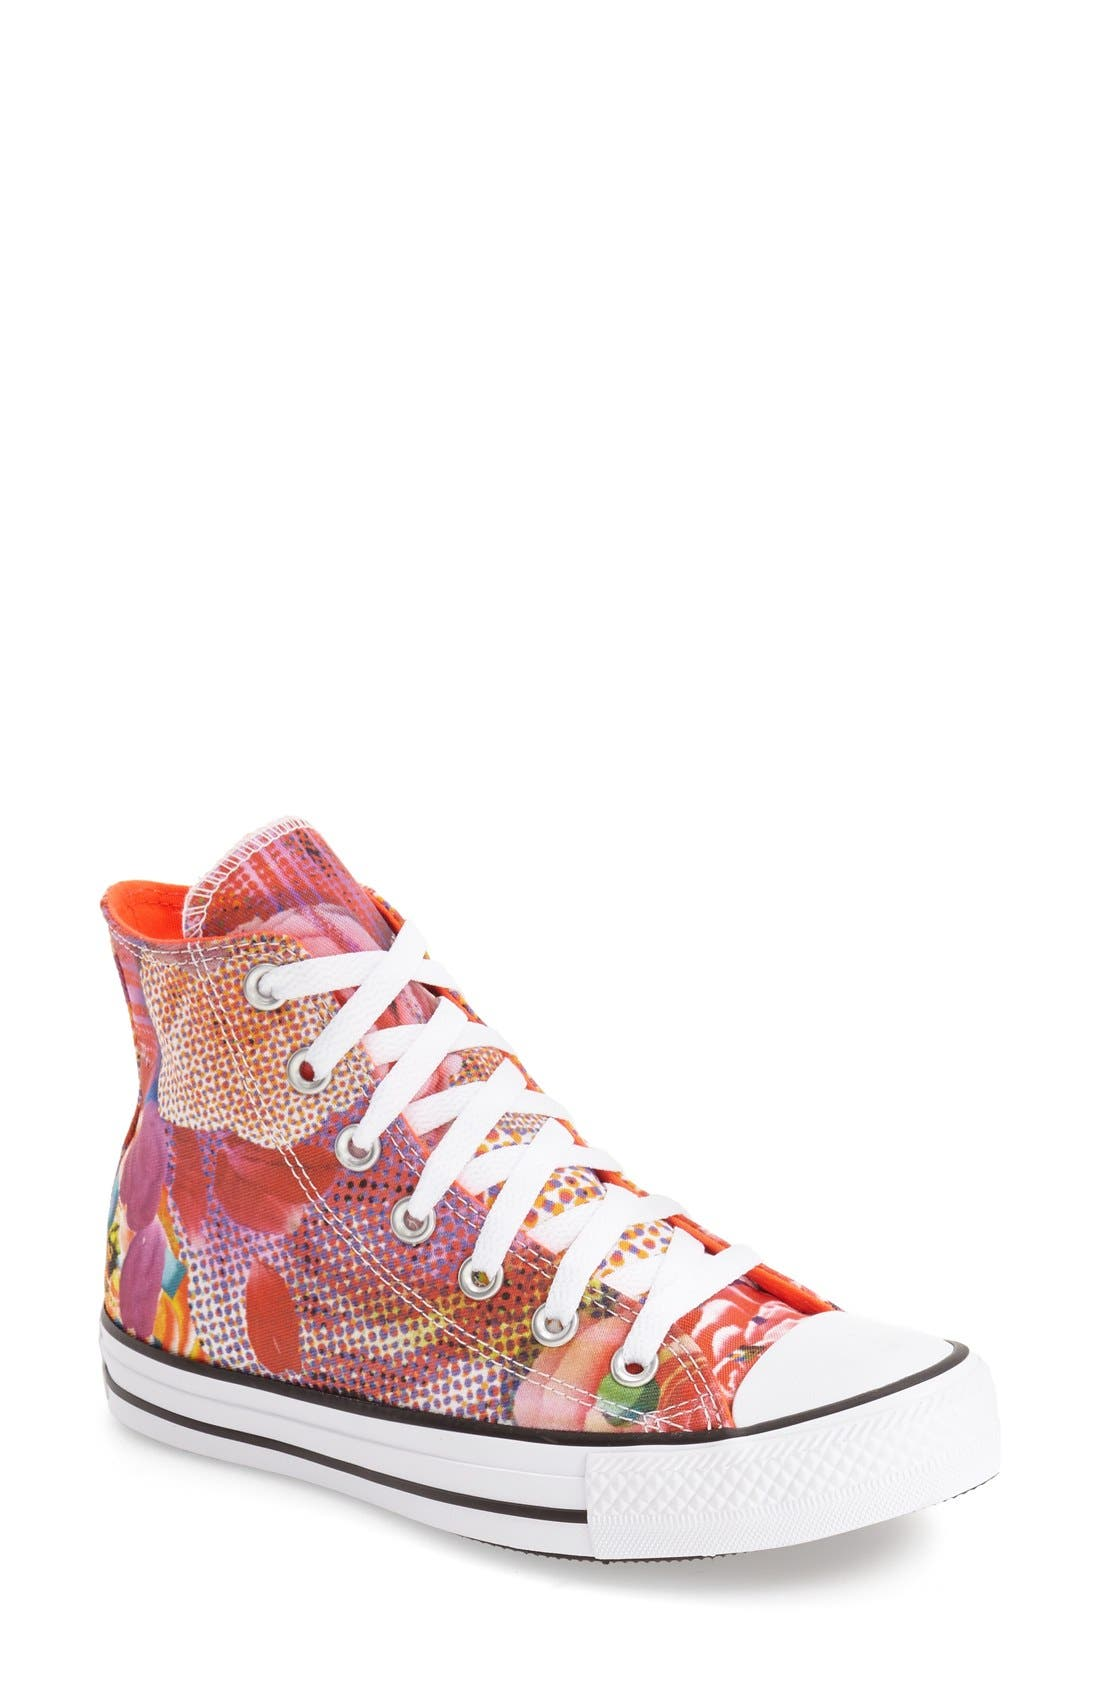 Alternate Image 1 Selected - Converse Chuck Taylor® All Star® 'Digital Floral' High Top (Women)